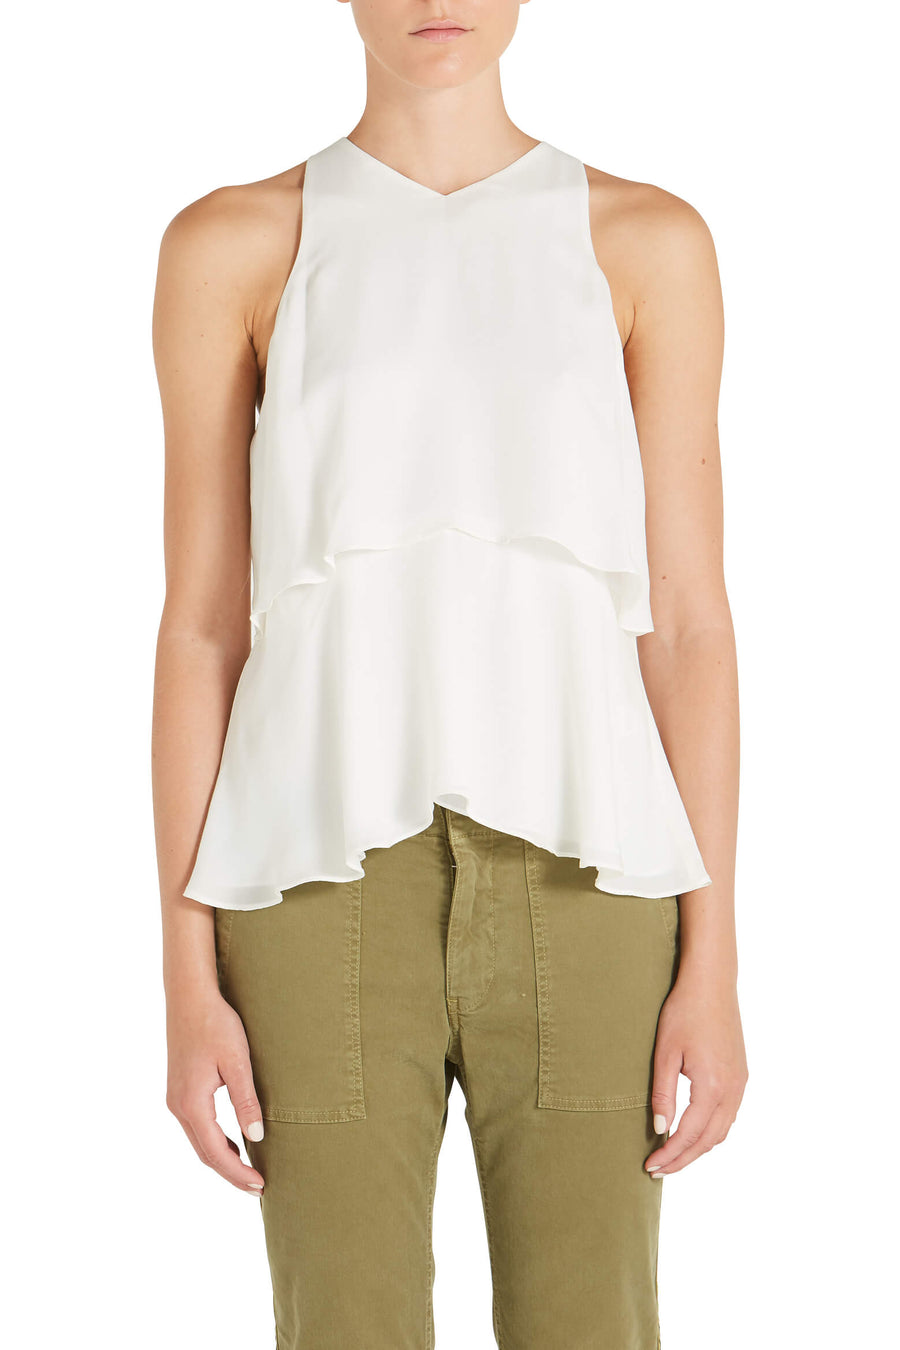 A.L.C Duran Sleeveless Top Ivory The New Trend